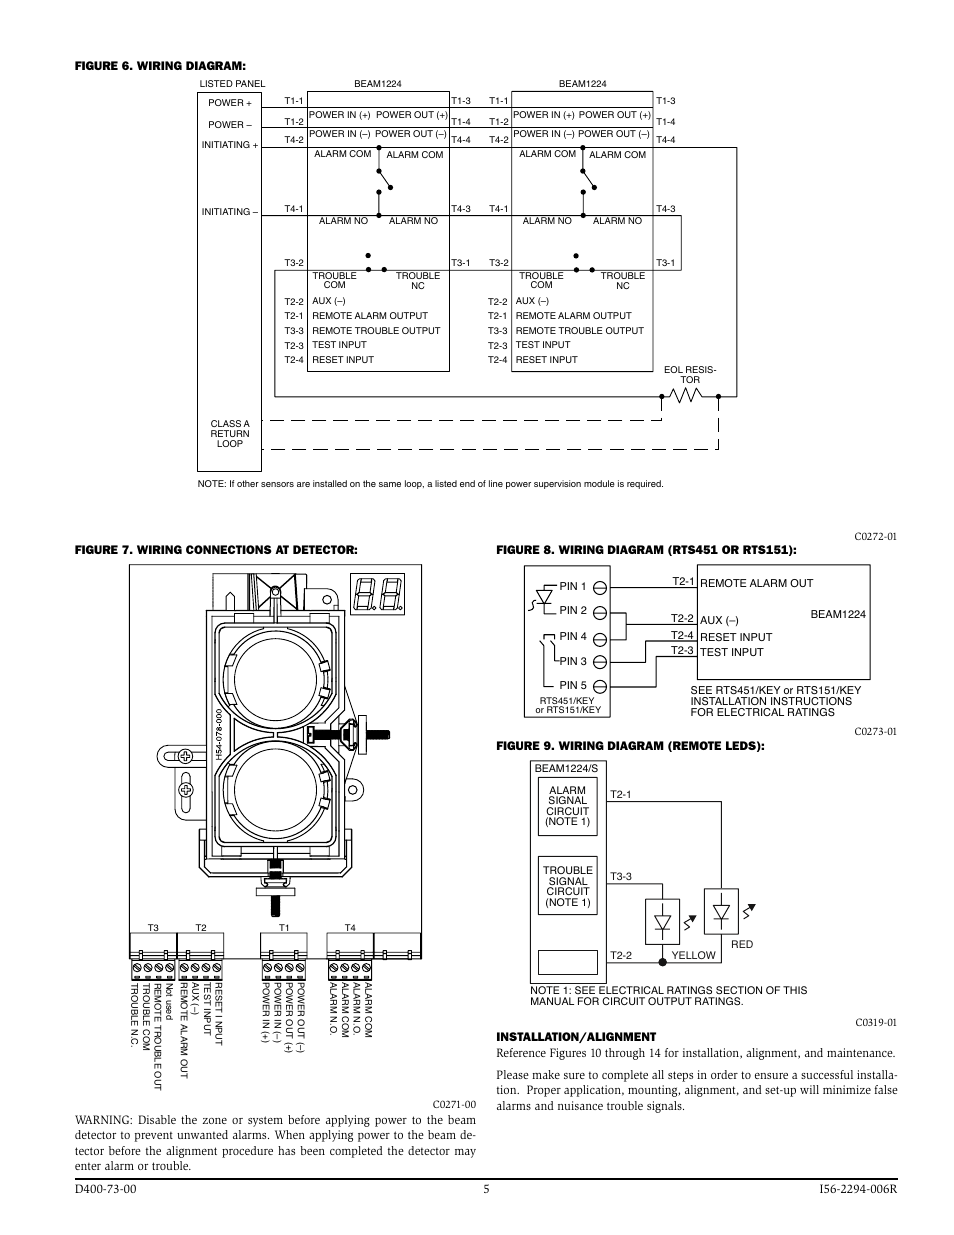 system sensor beam1224 beam1224s page5 system sensor beam1224, beam1224s user manual page 5 13 system sensor beam detector 1224 wiring diagram at gsmx.co